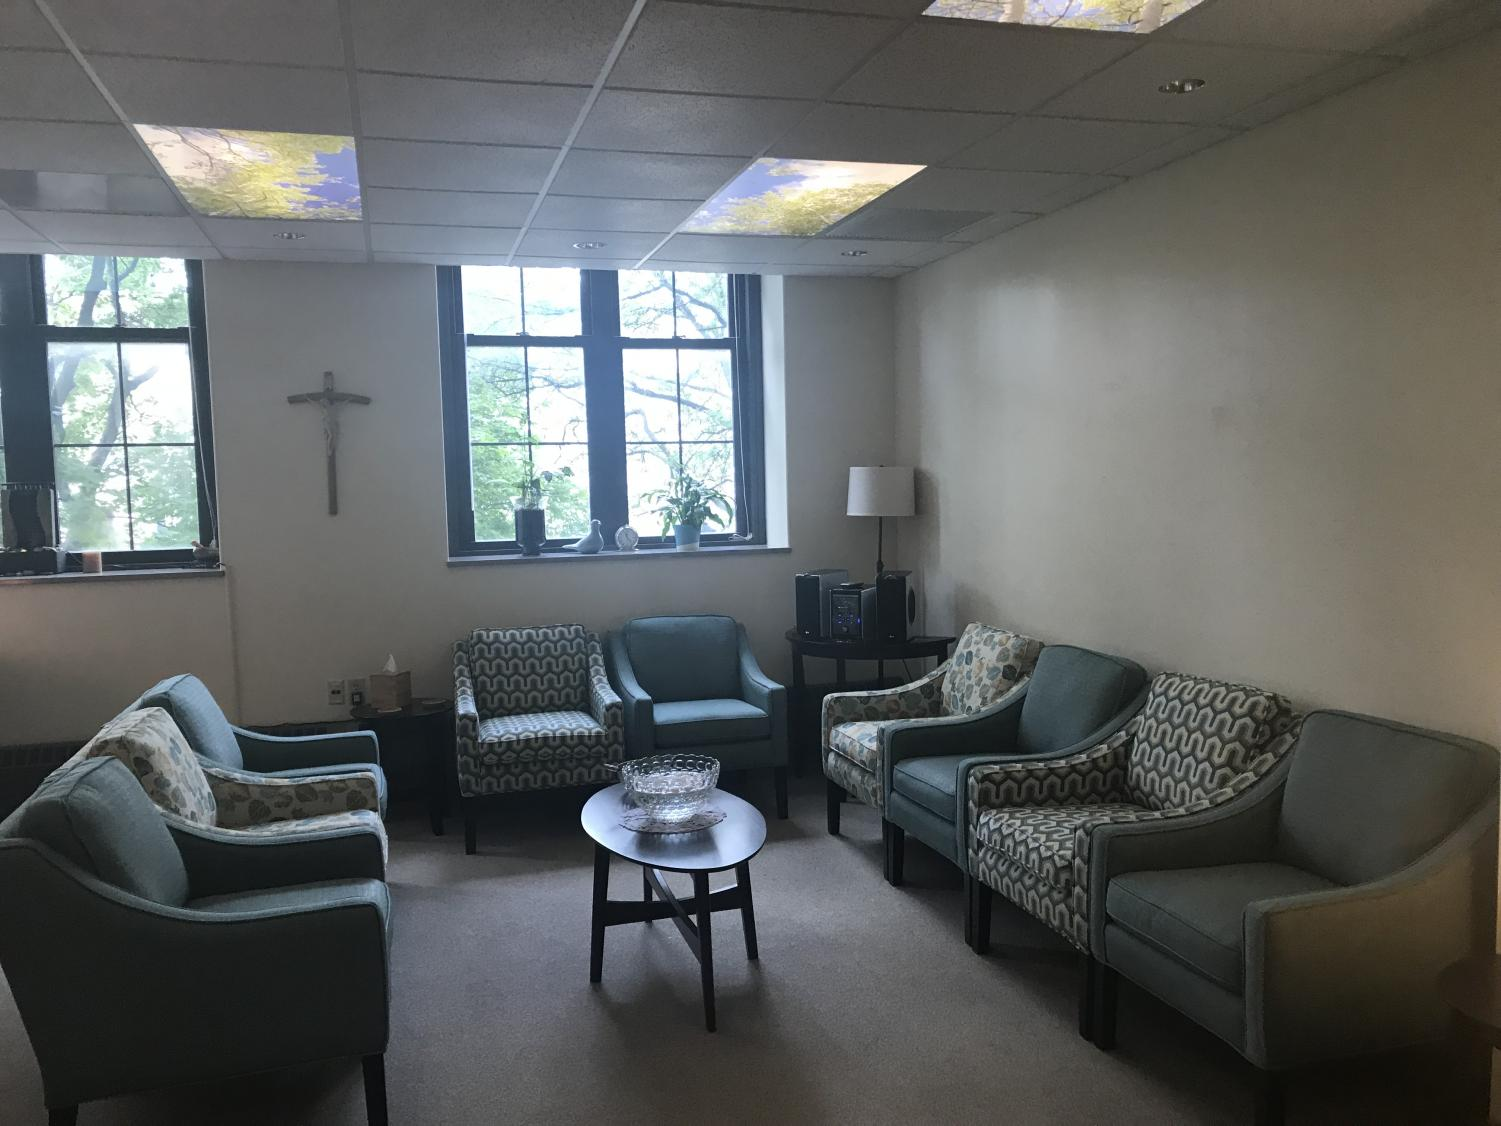 The space now contains sixteen chairs for faculty and staff to participate in spiritual meetings.  Photo courtesy of Annie Matea.